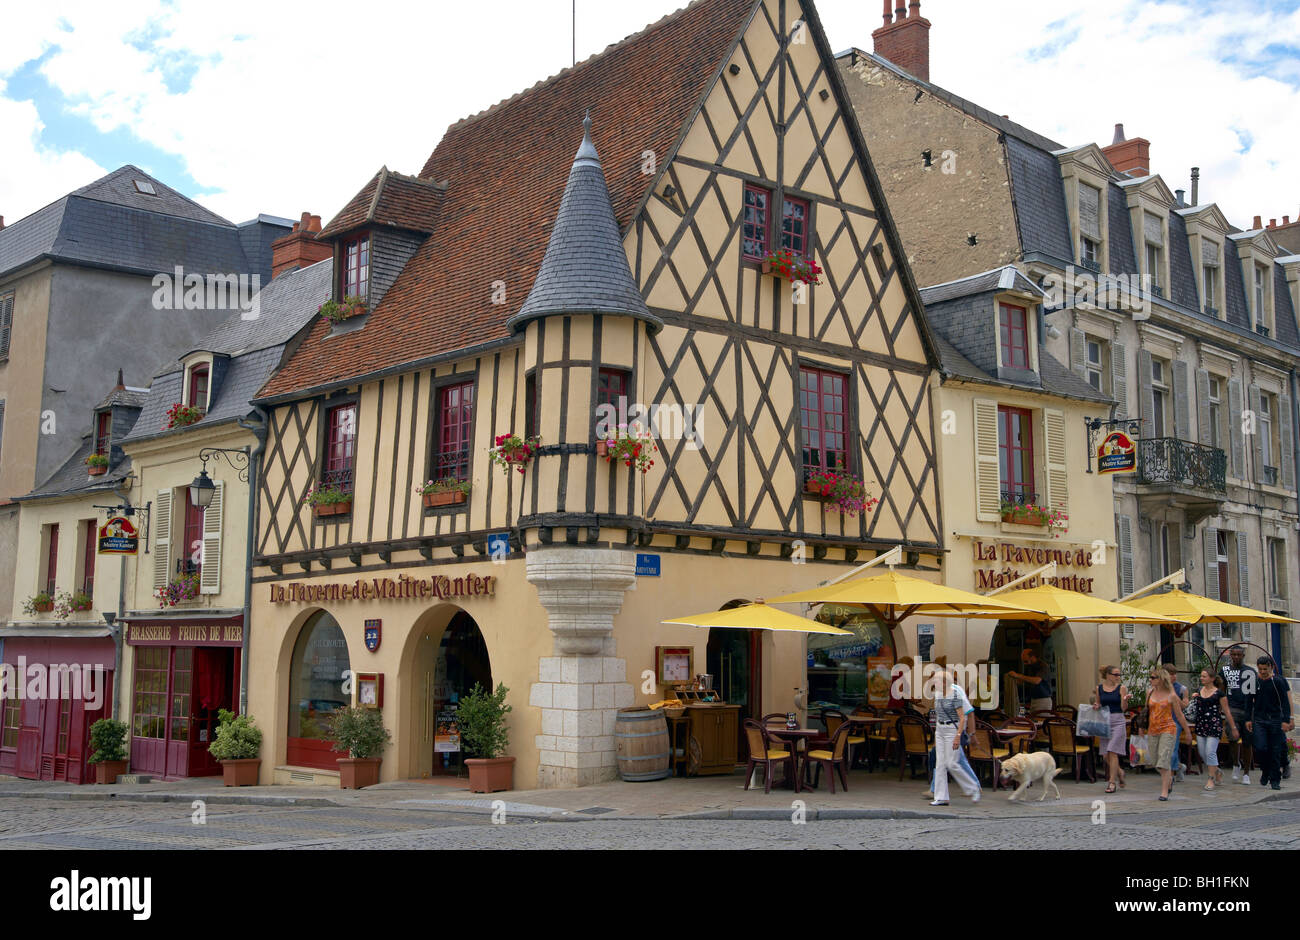 old city of bourges with restaurants the way of st james chemins stock photo 27693785 alamy. Black Bedroom Furniture Sets. Home Design Ideas